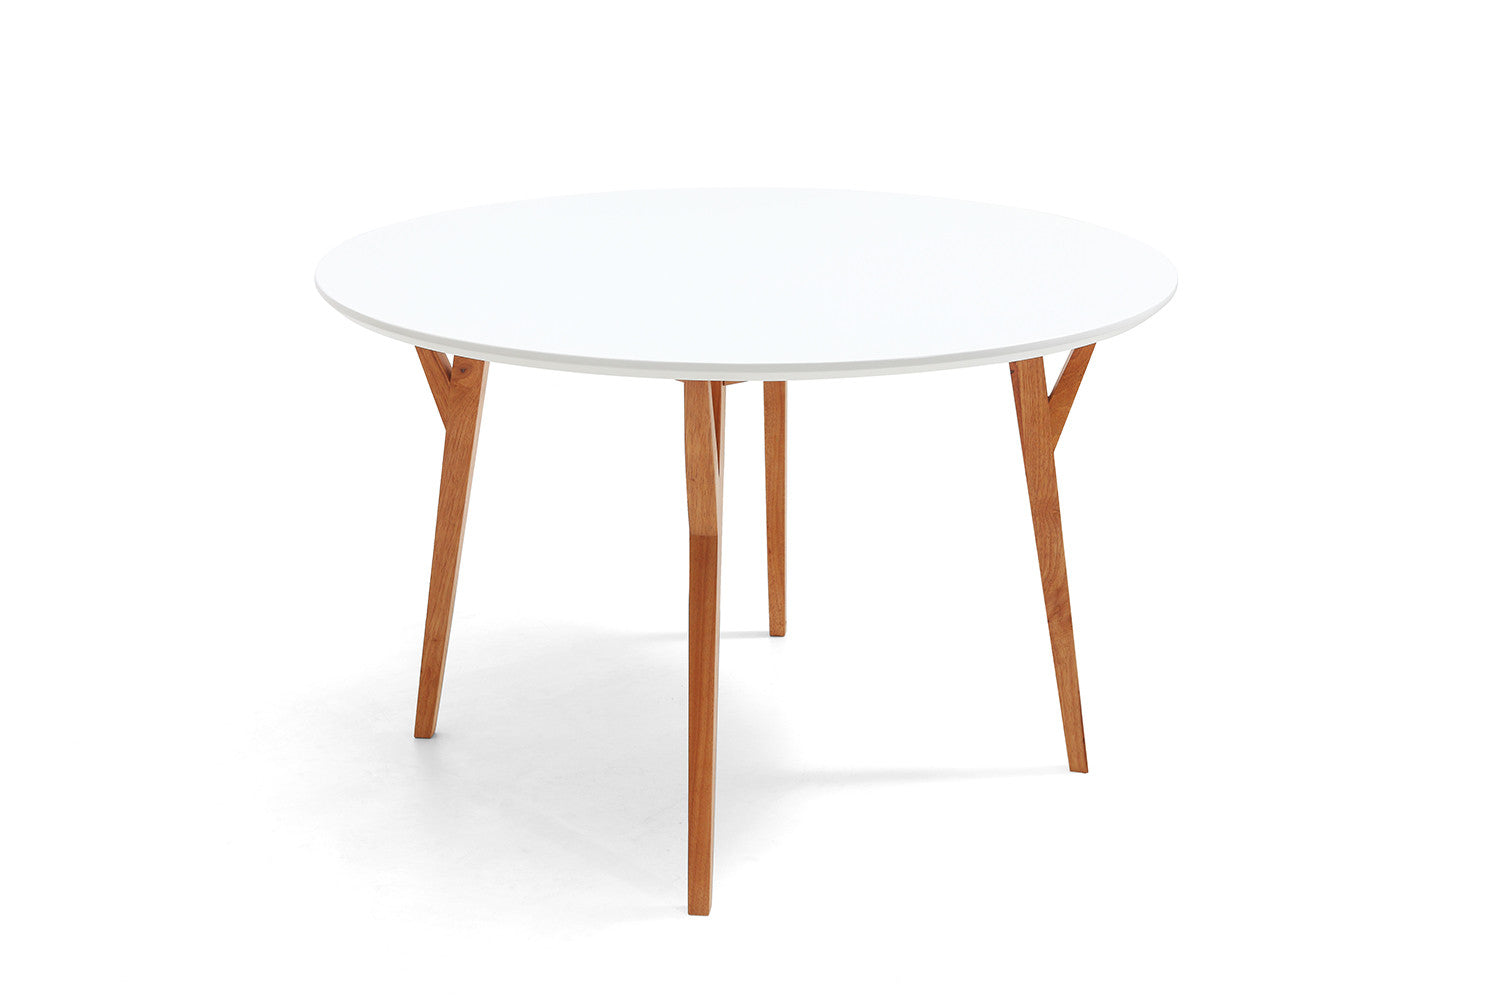 Table de salle manger ronde design scandinave moesa for Table a manger scandinave bois